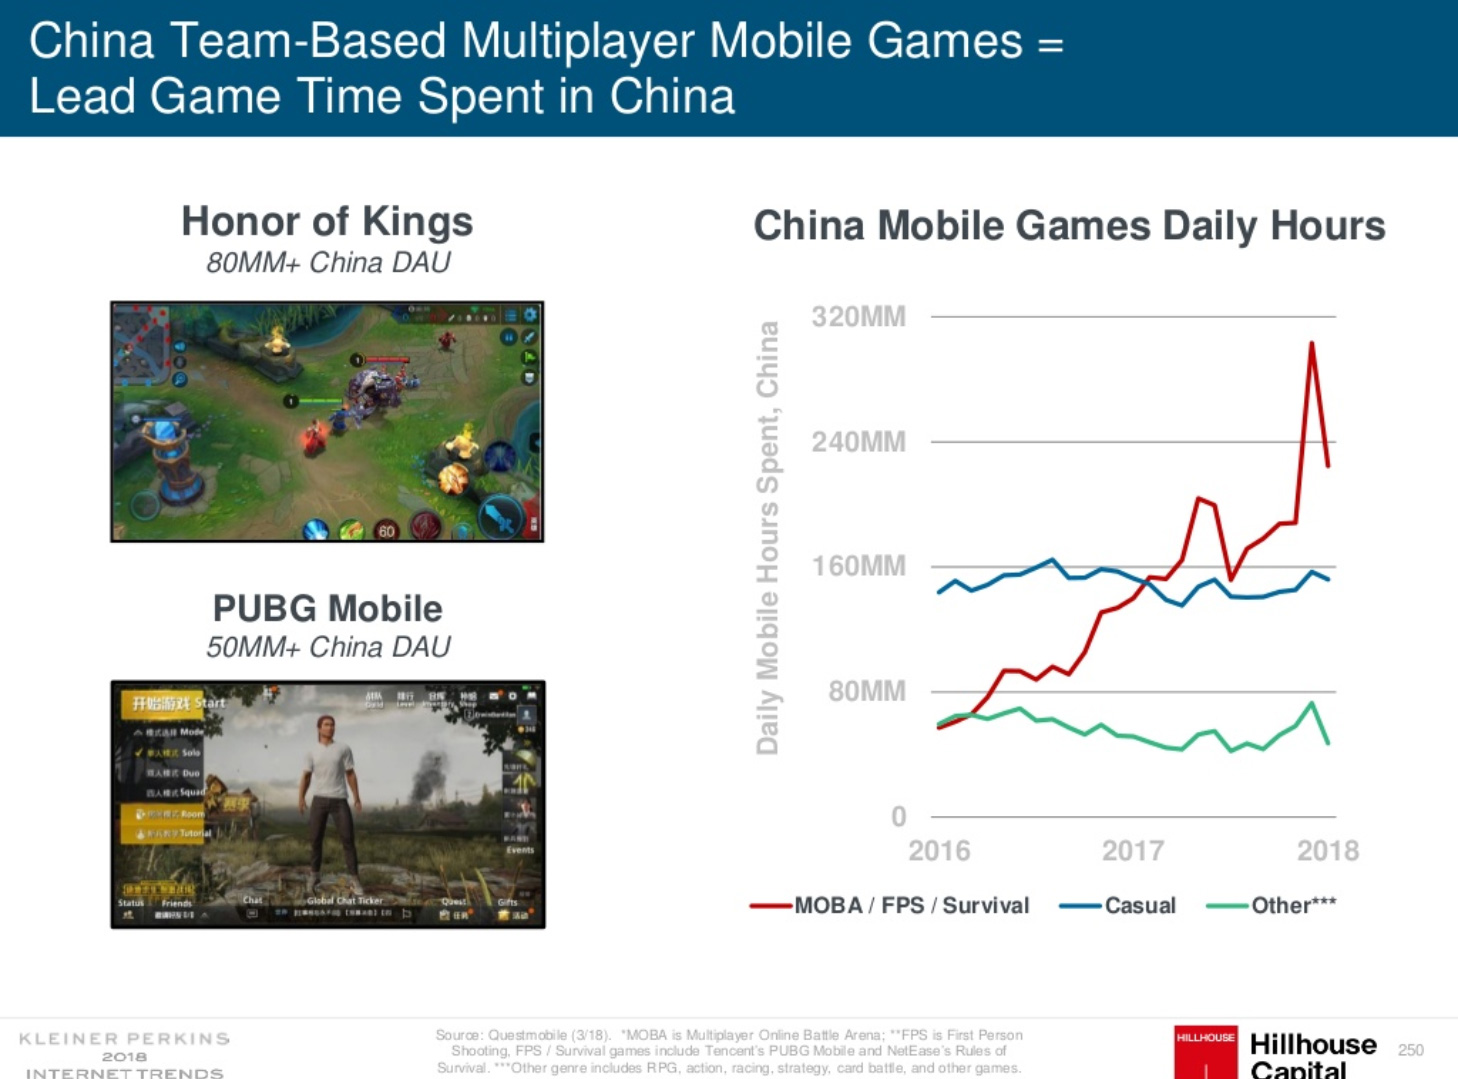 China Team Based Multiplayer games grow fast